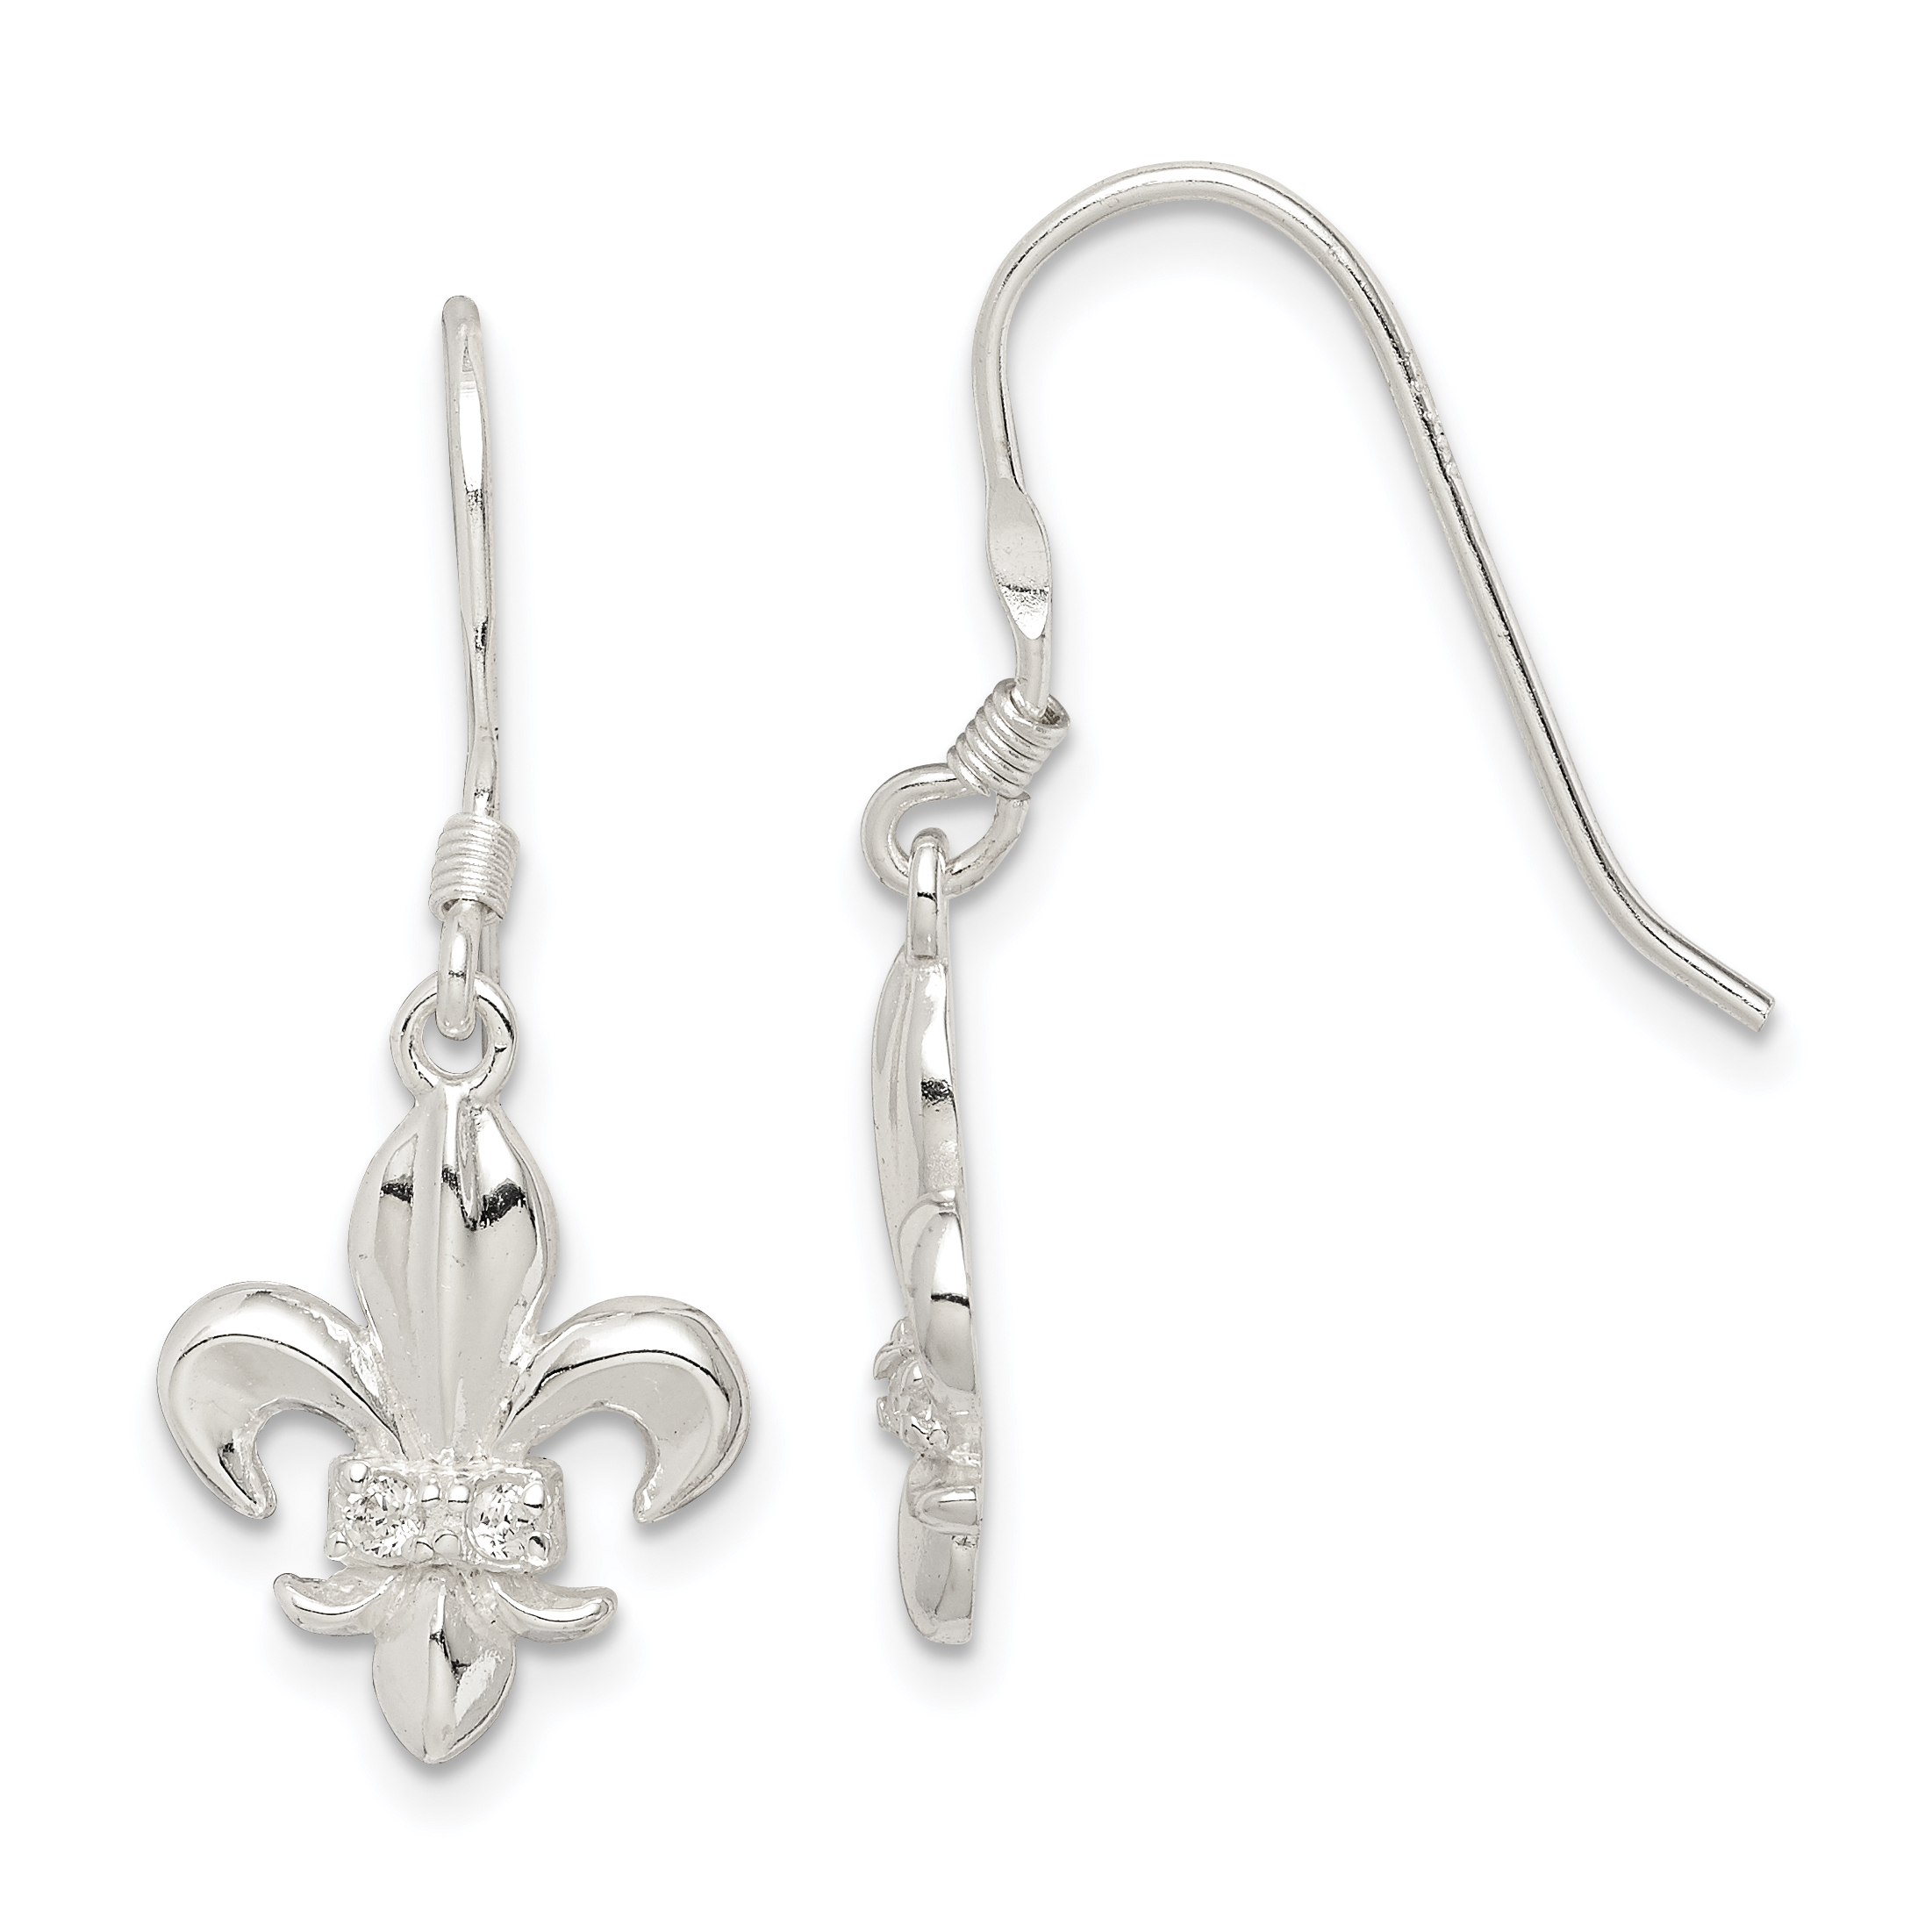 Sterling Silver Cz Fleur De Lis Earrings Weight 2 25 Grams Length 30mm Width 12mm